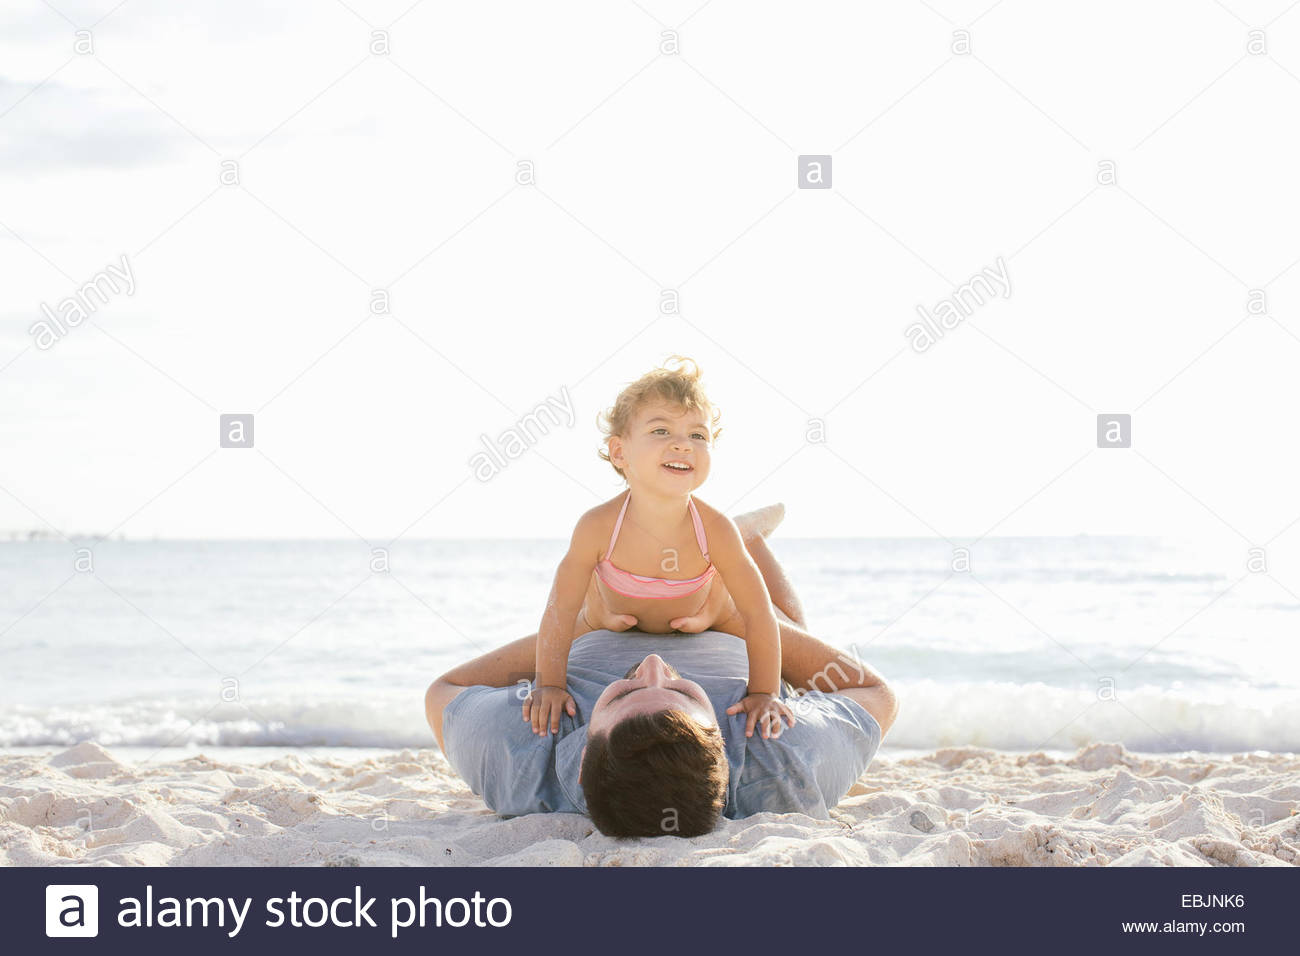 Female toddler sitting on top of father at beach, Tuscany, Italy - Stock Image